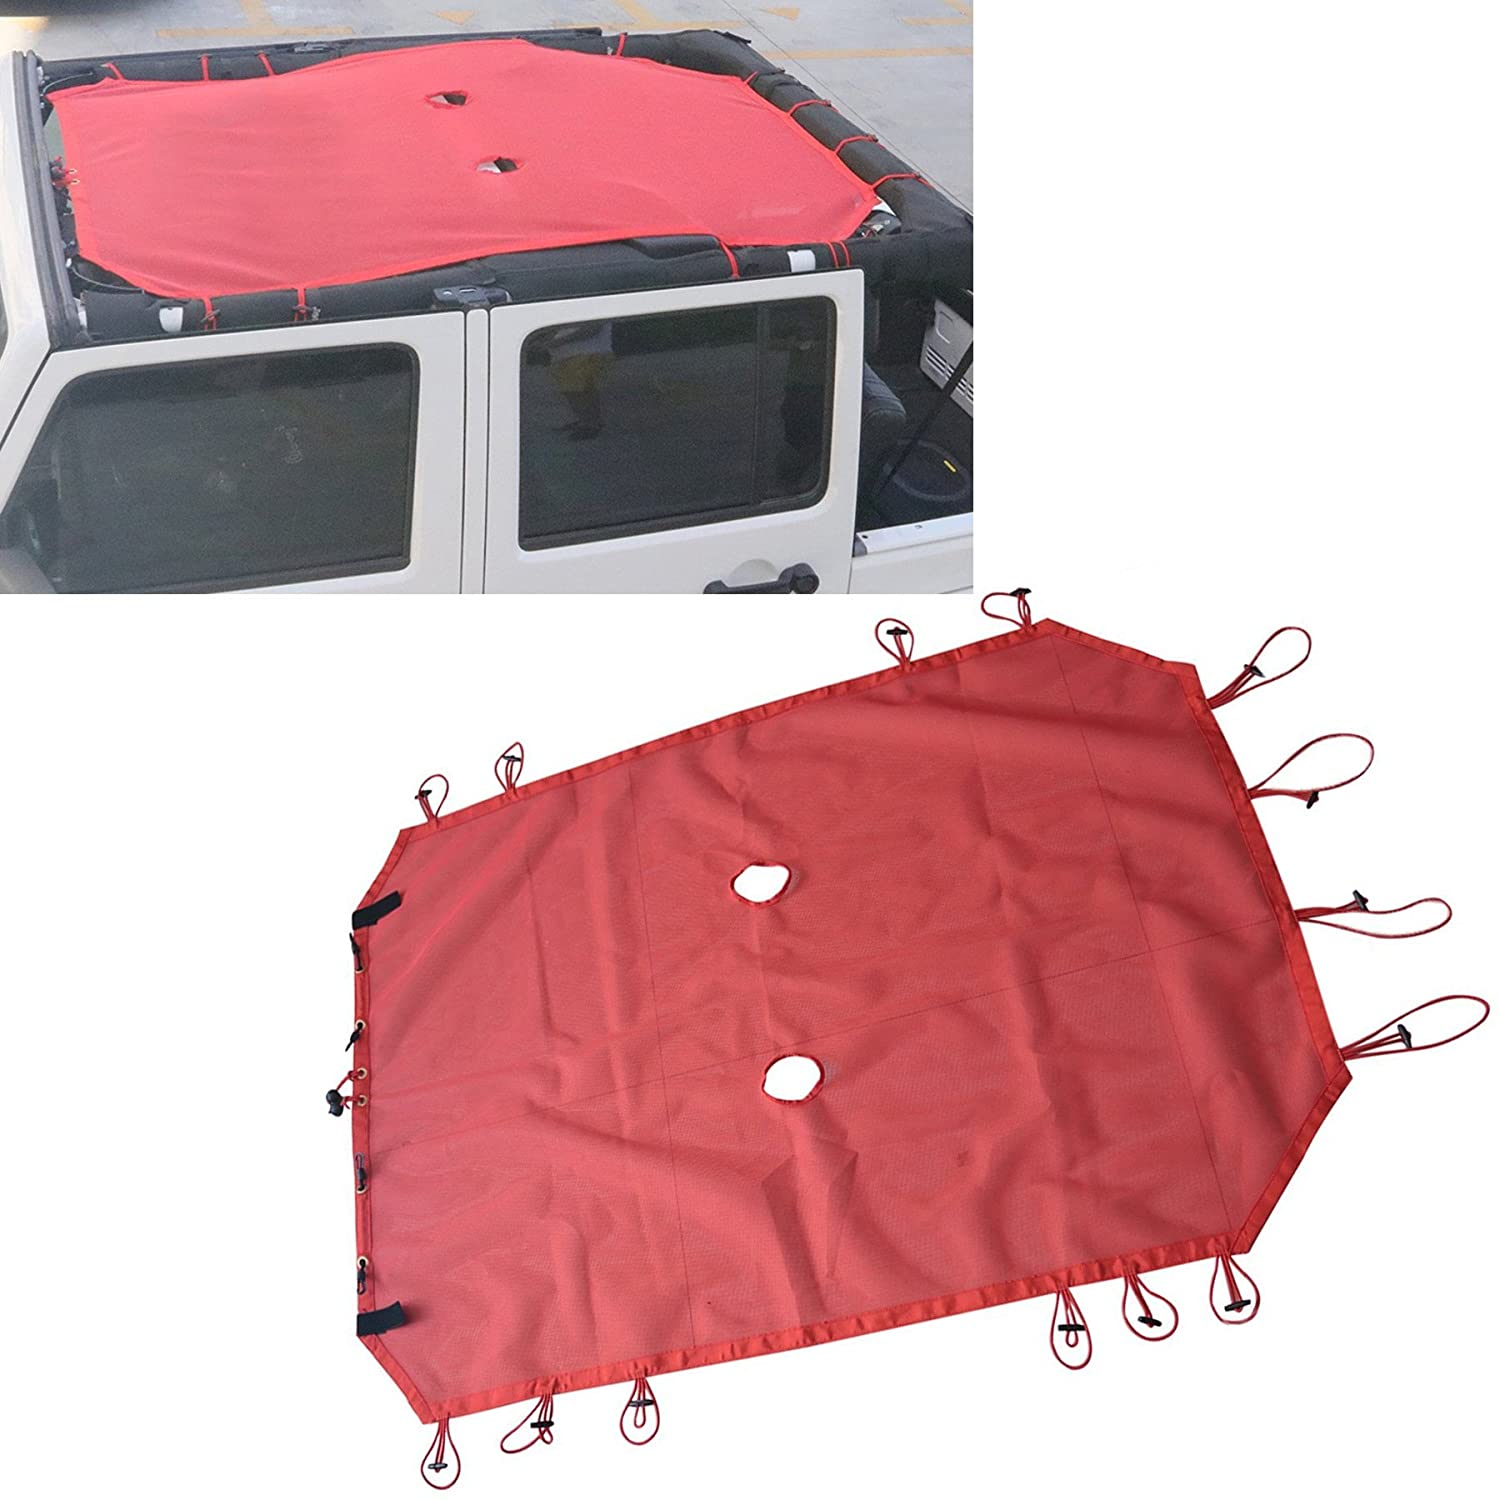 Without 5 Star Logo AVOMAR Red Eclipse Sunshade Mesh Sun Shade Full Top Cover UV Protection with Storage Pockets for 2007-2017 Jeep Wrangler JK /& Unlimited 4 Door